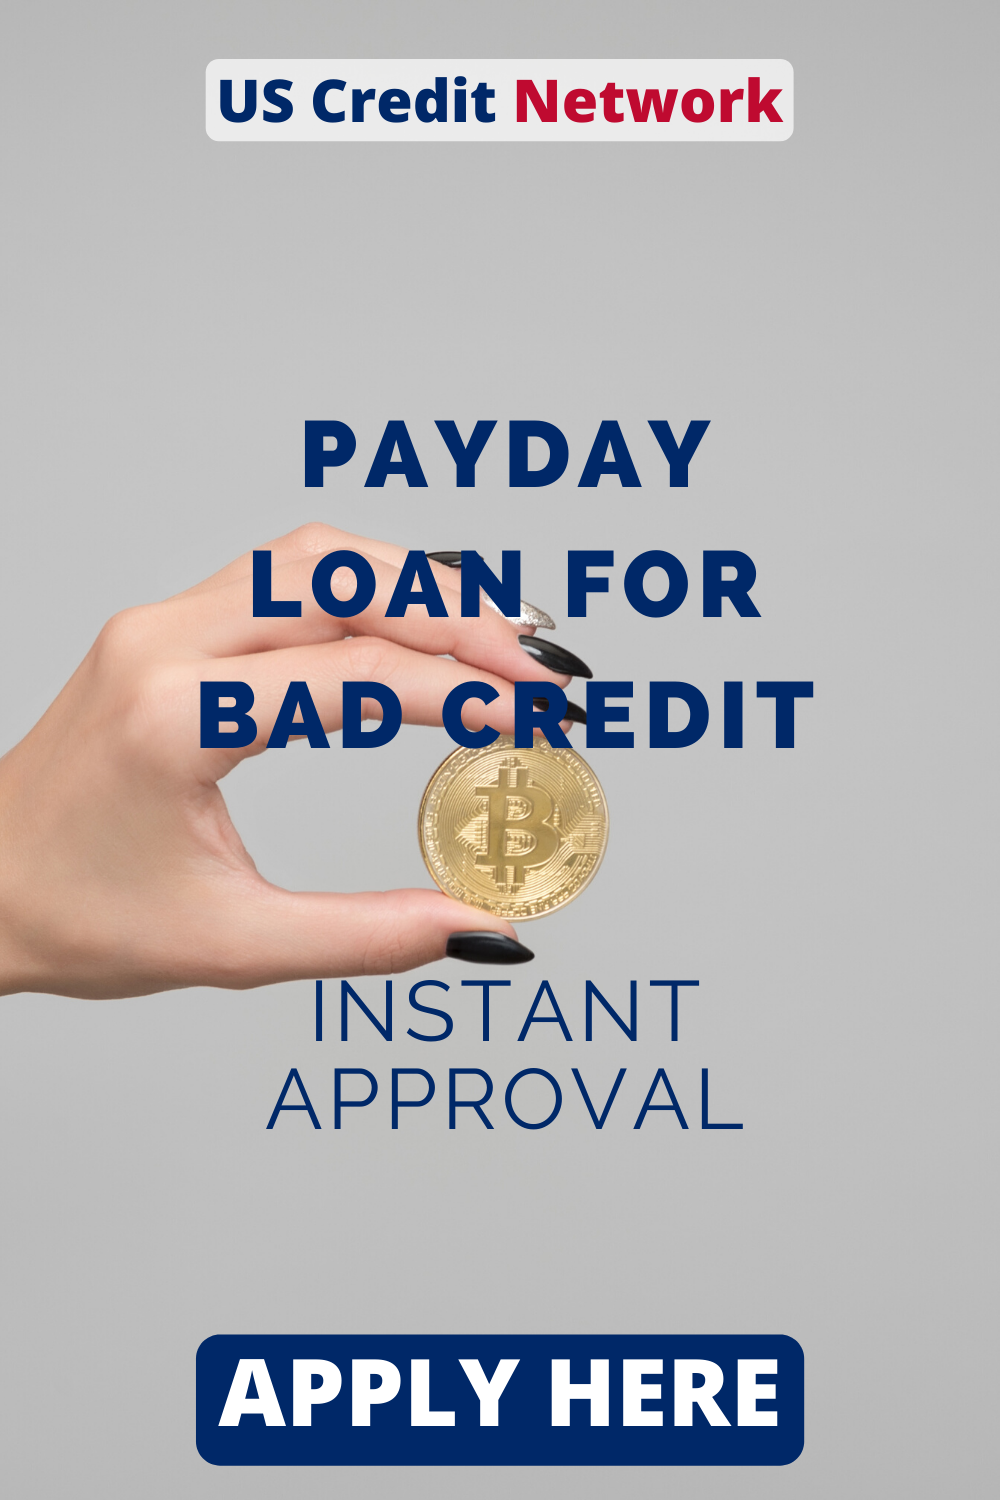 How To Get A Payday Loan With Bad Credit In 2020 Payday Loans Payday Loans For Bad Credit